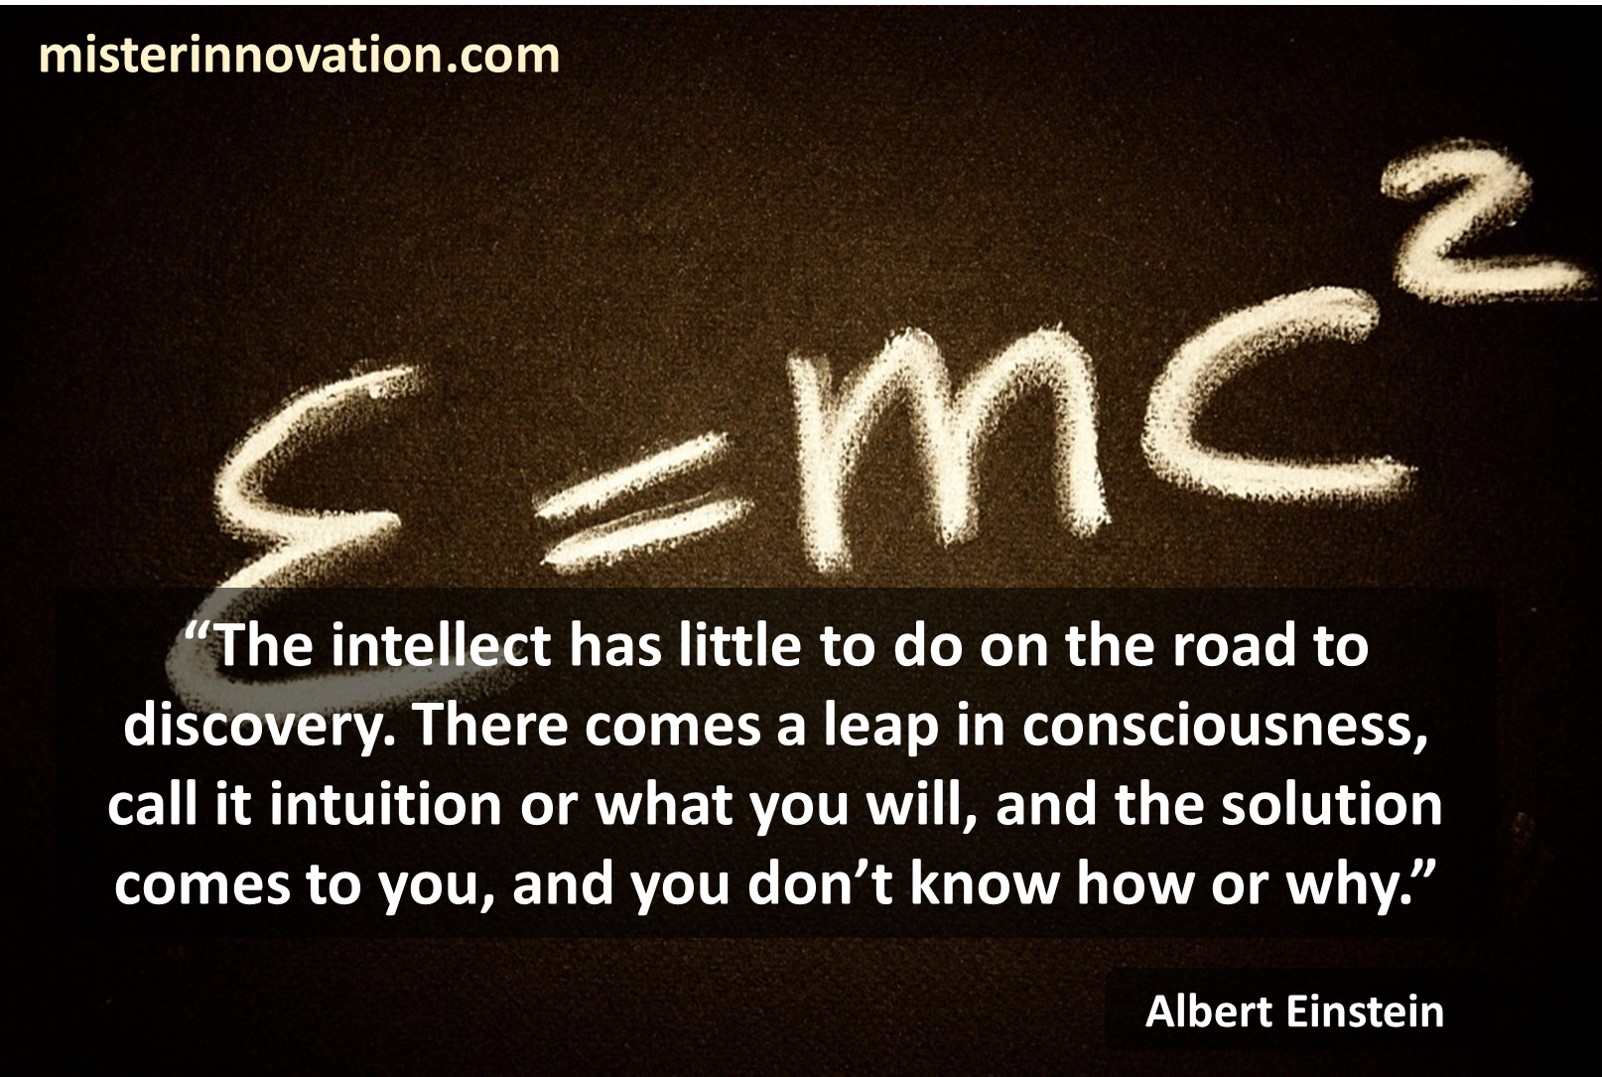 Albert Einstein Quote on Intellect and Intuition